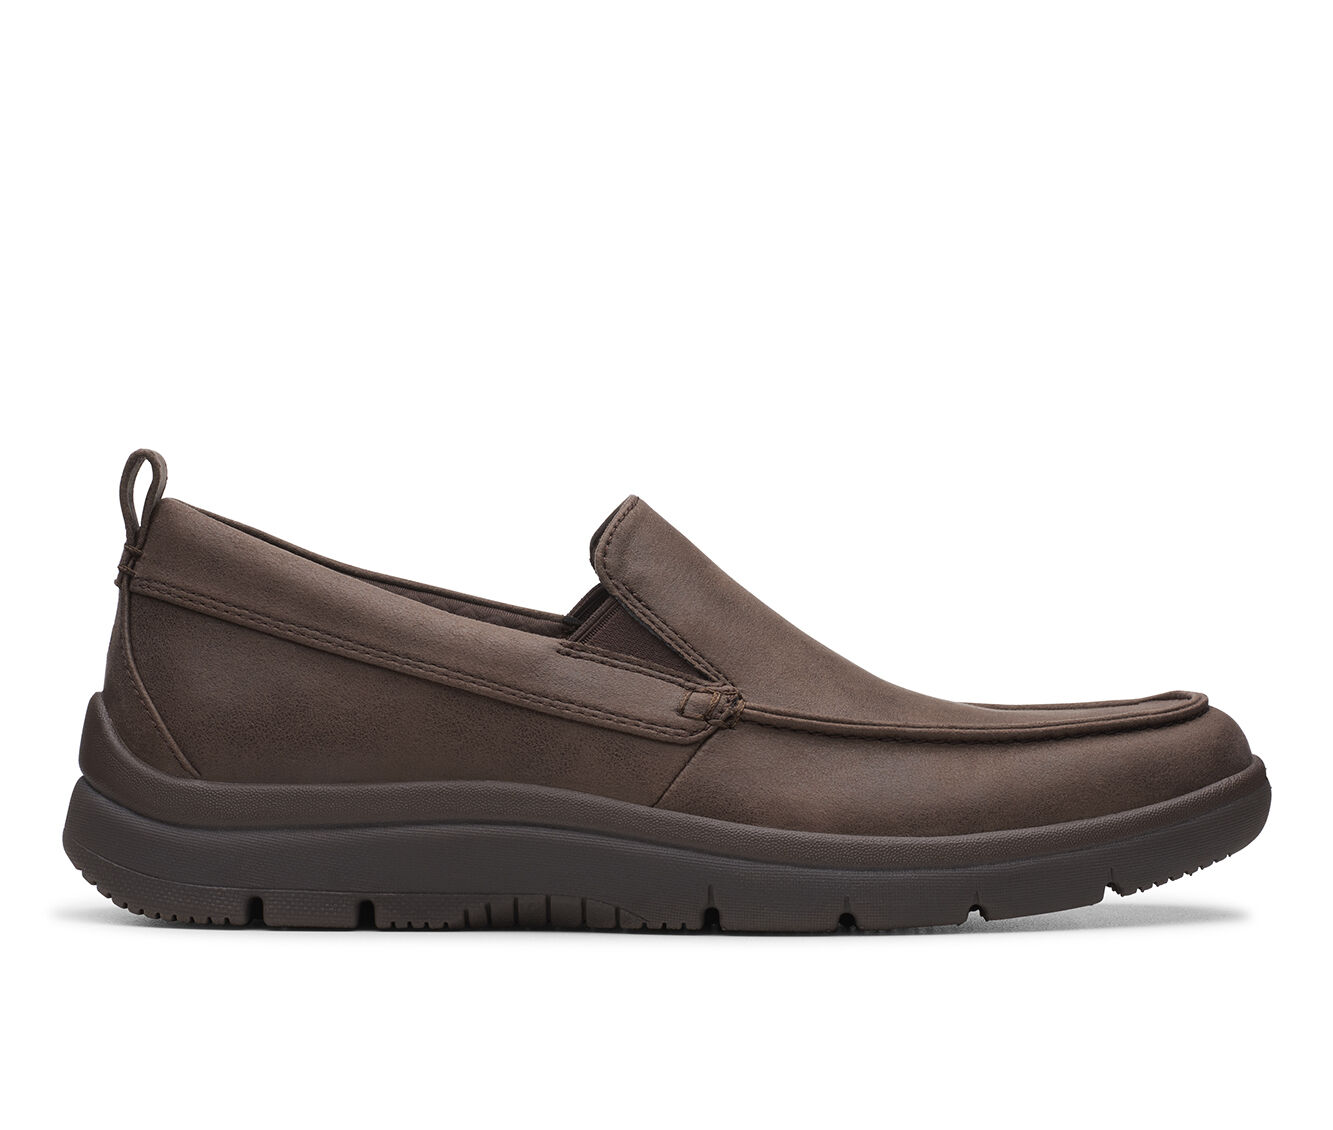 Men's Clarks Tunsil Way Slip-On Shoes Brown